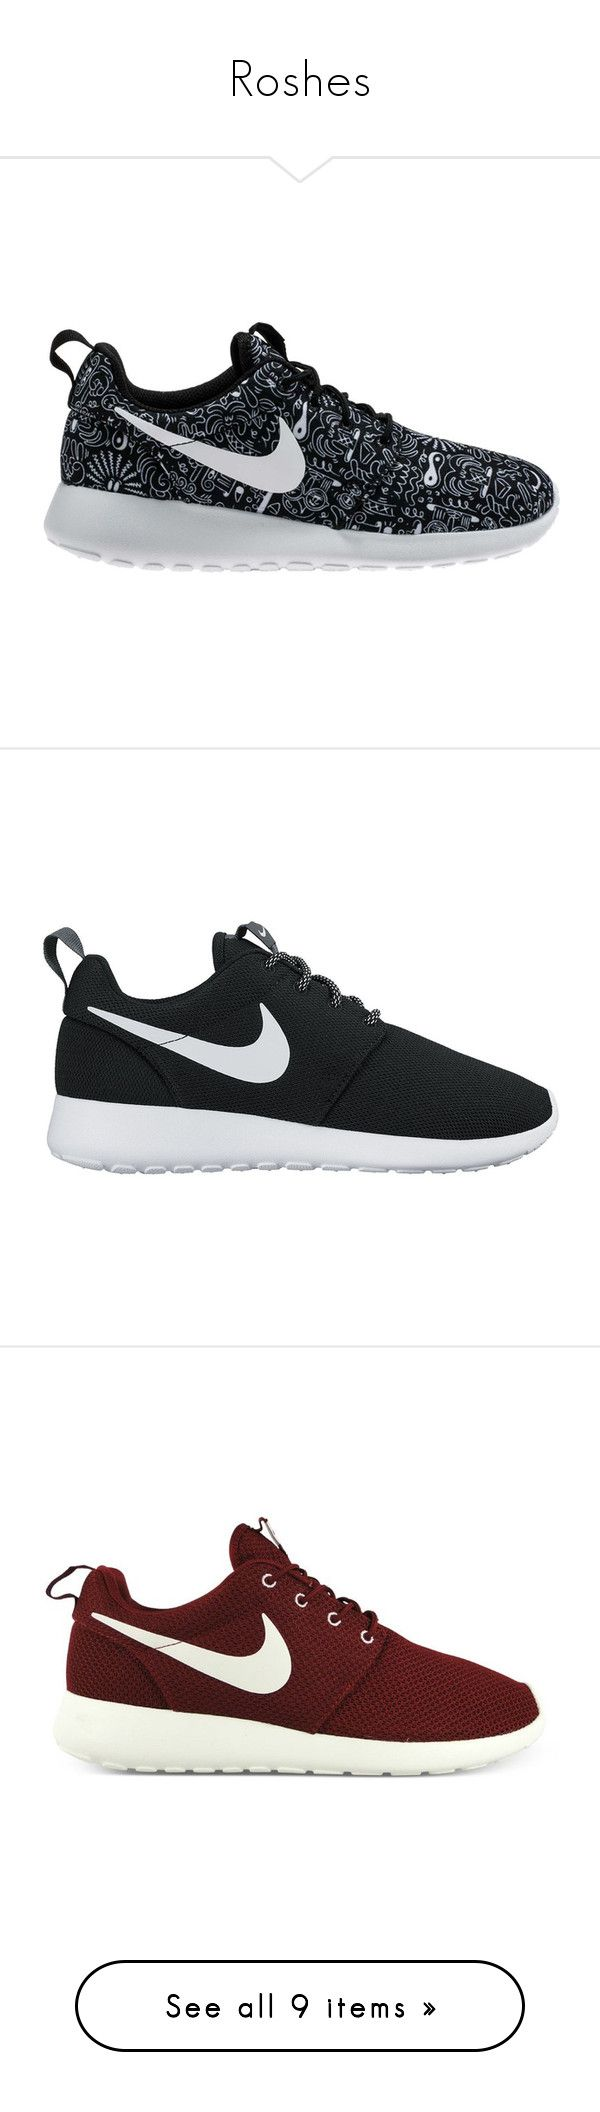 """""""Roshes"""" by mikaria-fashion ❤ liked on Polyvore featuring shoes, sneakers, nike, zapatos, shoe club, women, jogging shoes, white and black shoes, black and white print shoes and nike shoes"""